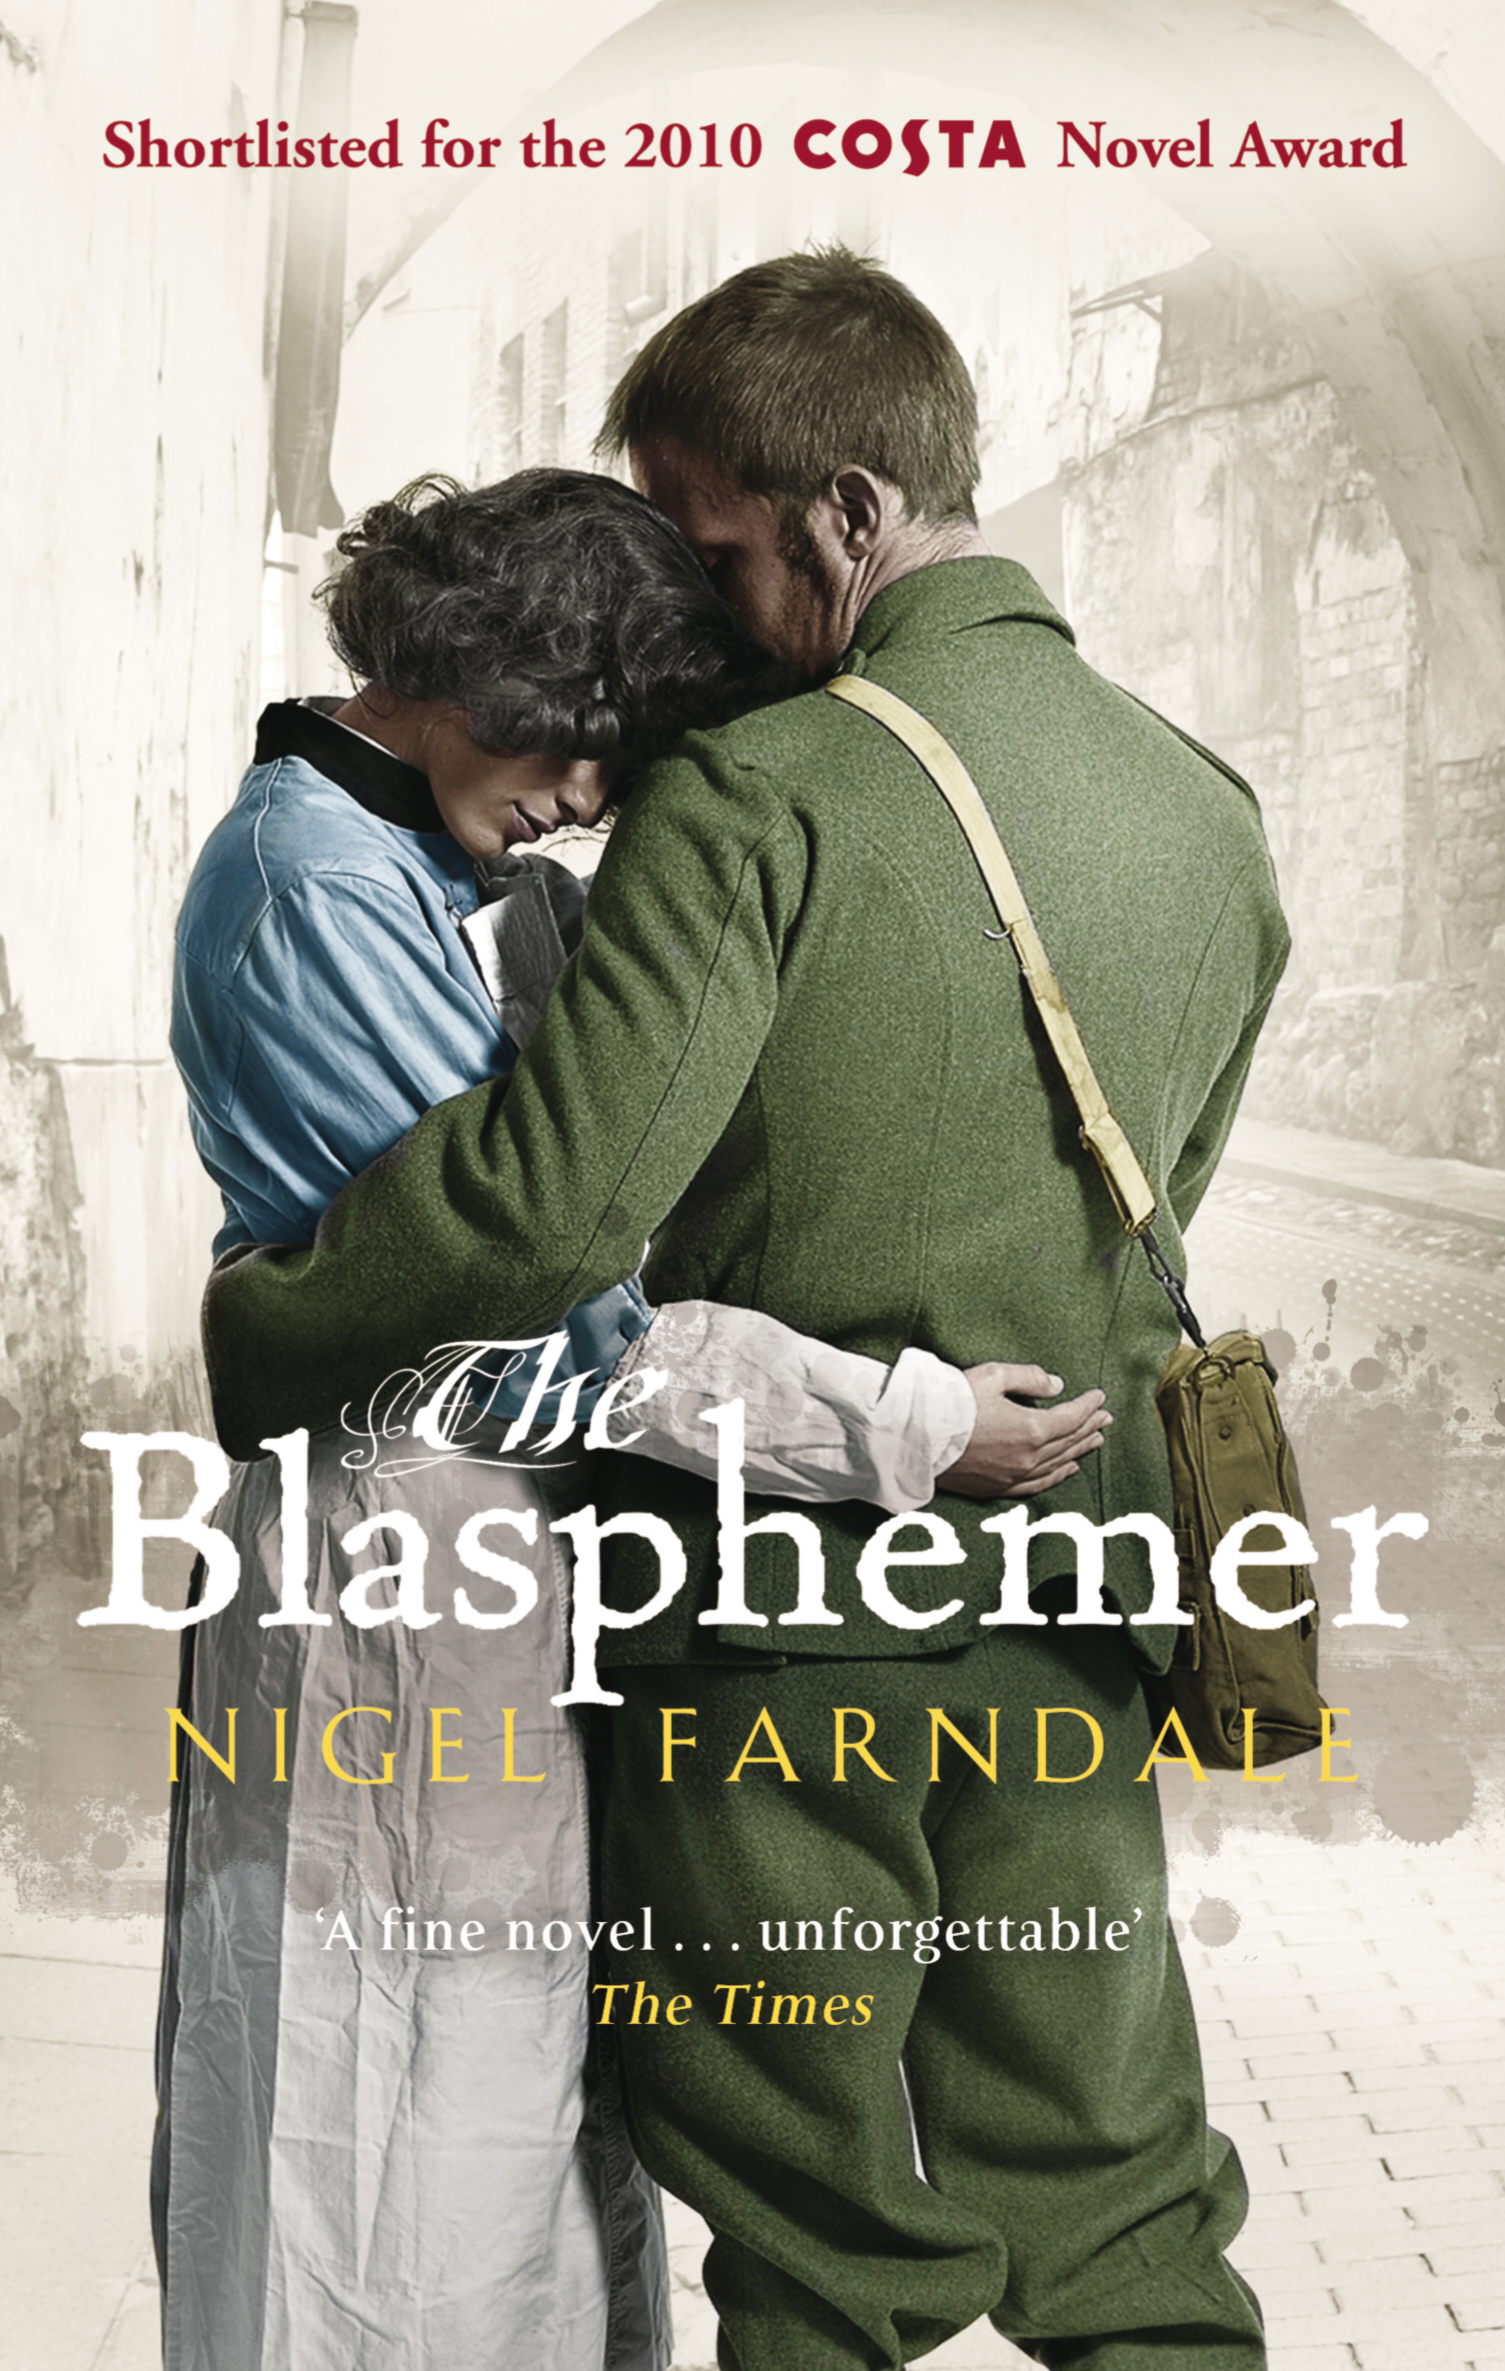 The Blasphemer PB by Nigel Farndale